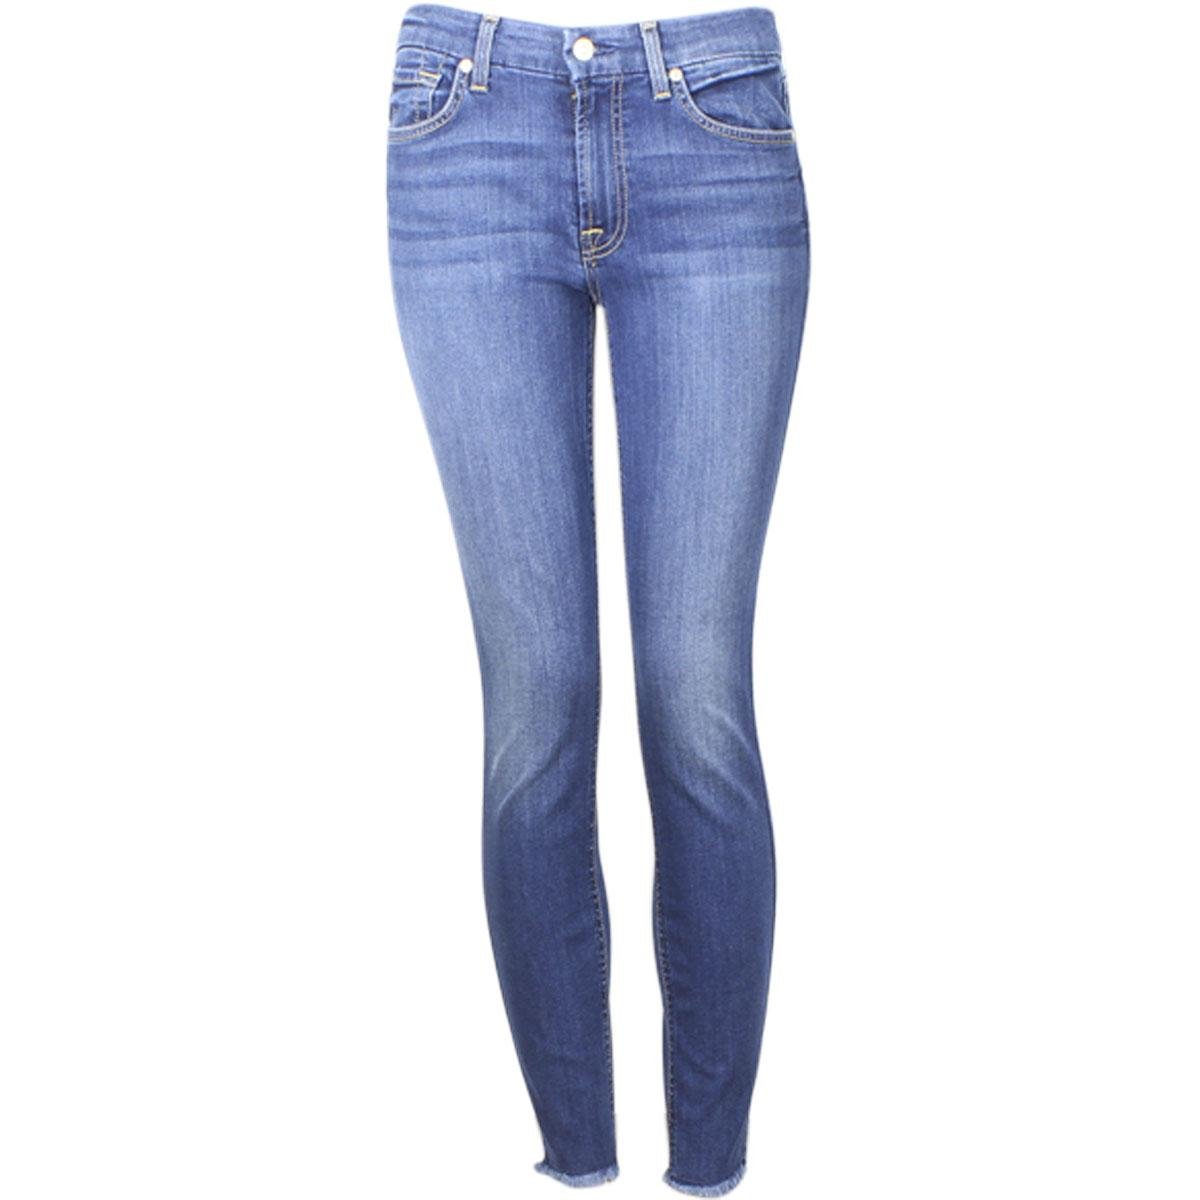 Image of 7 For All Mankind Women's (B)Air Denim The Ankle Skinny Raw Hem Jeans - Blue - 29 (7/8)